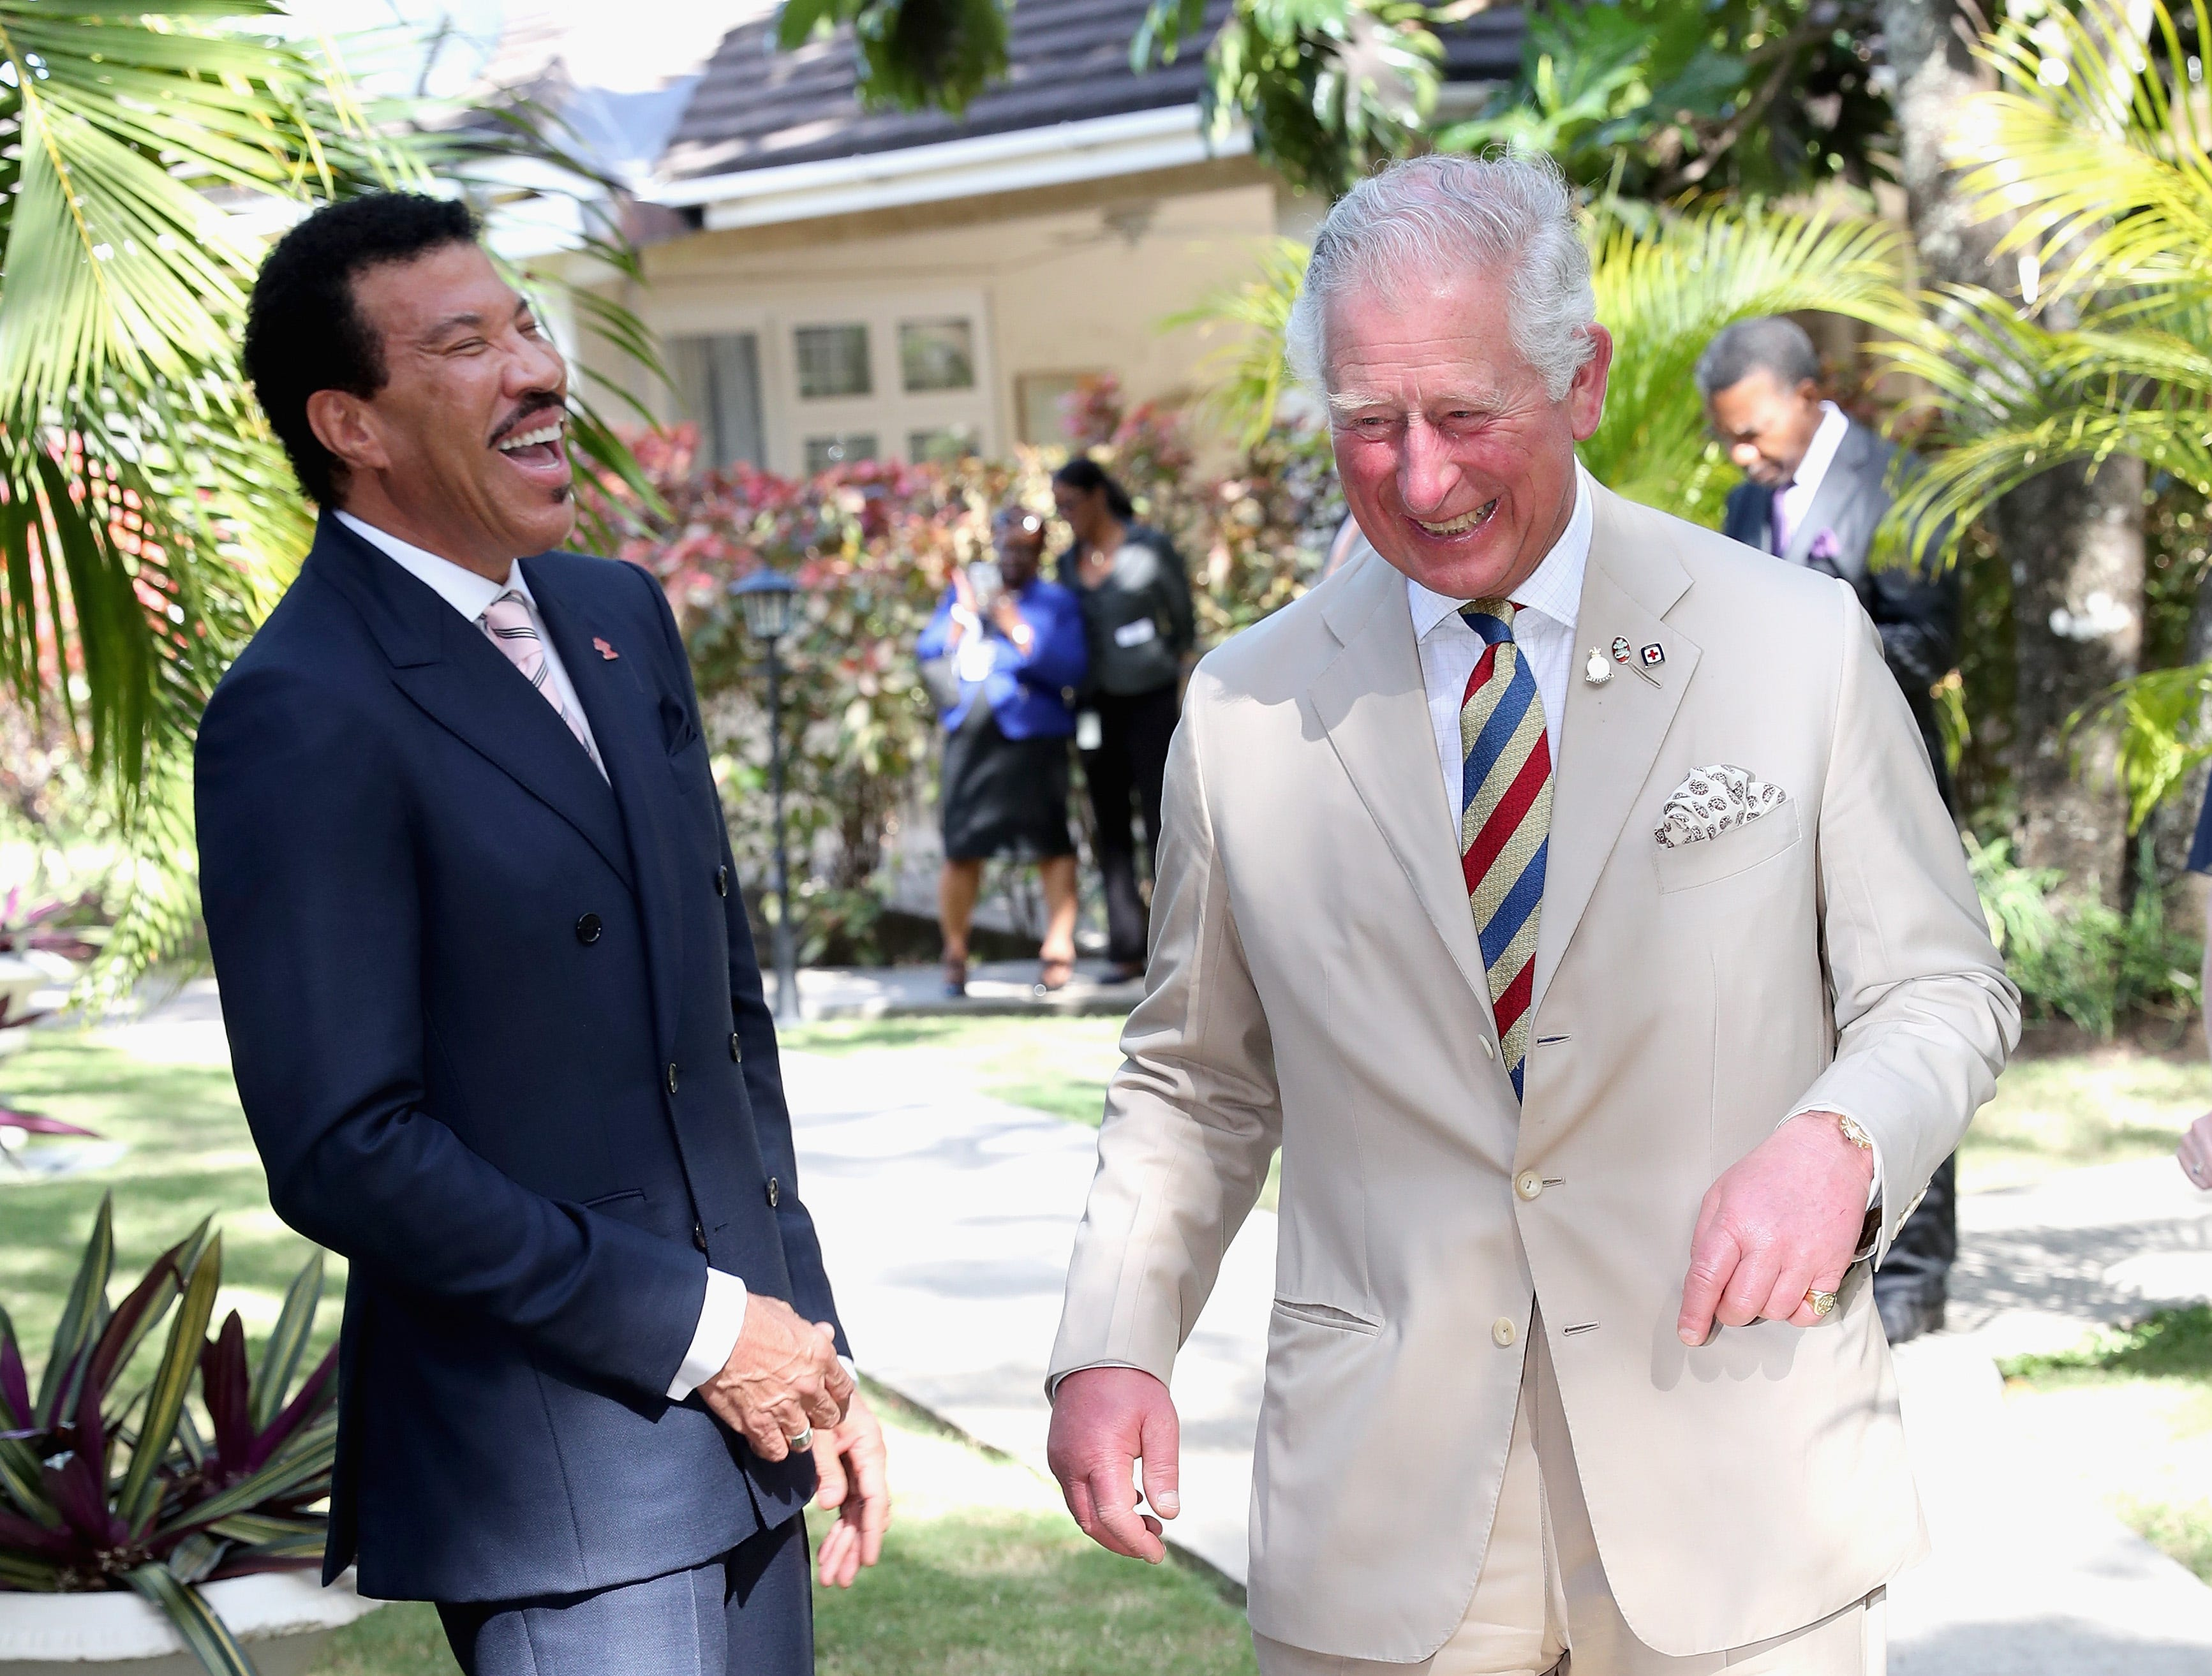 BRIDGETOWN, BARBADOS - MARCH 19:  Prince Charles, Prince of Wales meets singer Lionel Ritchie at a Prince's Trust International reception at The Coral Reef Club Hotel on March 19, 2019 in Bridgetown, Barbados.  (Photo by Chris Jackson/Getty Images) ORG XMIT: 775316887 ORIG FILE ID: 1131574065